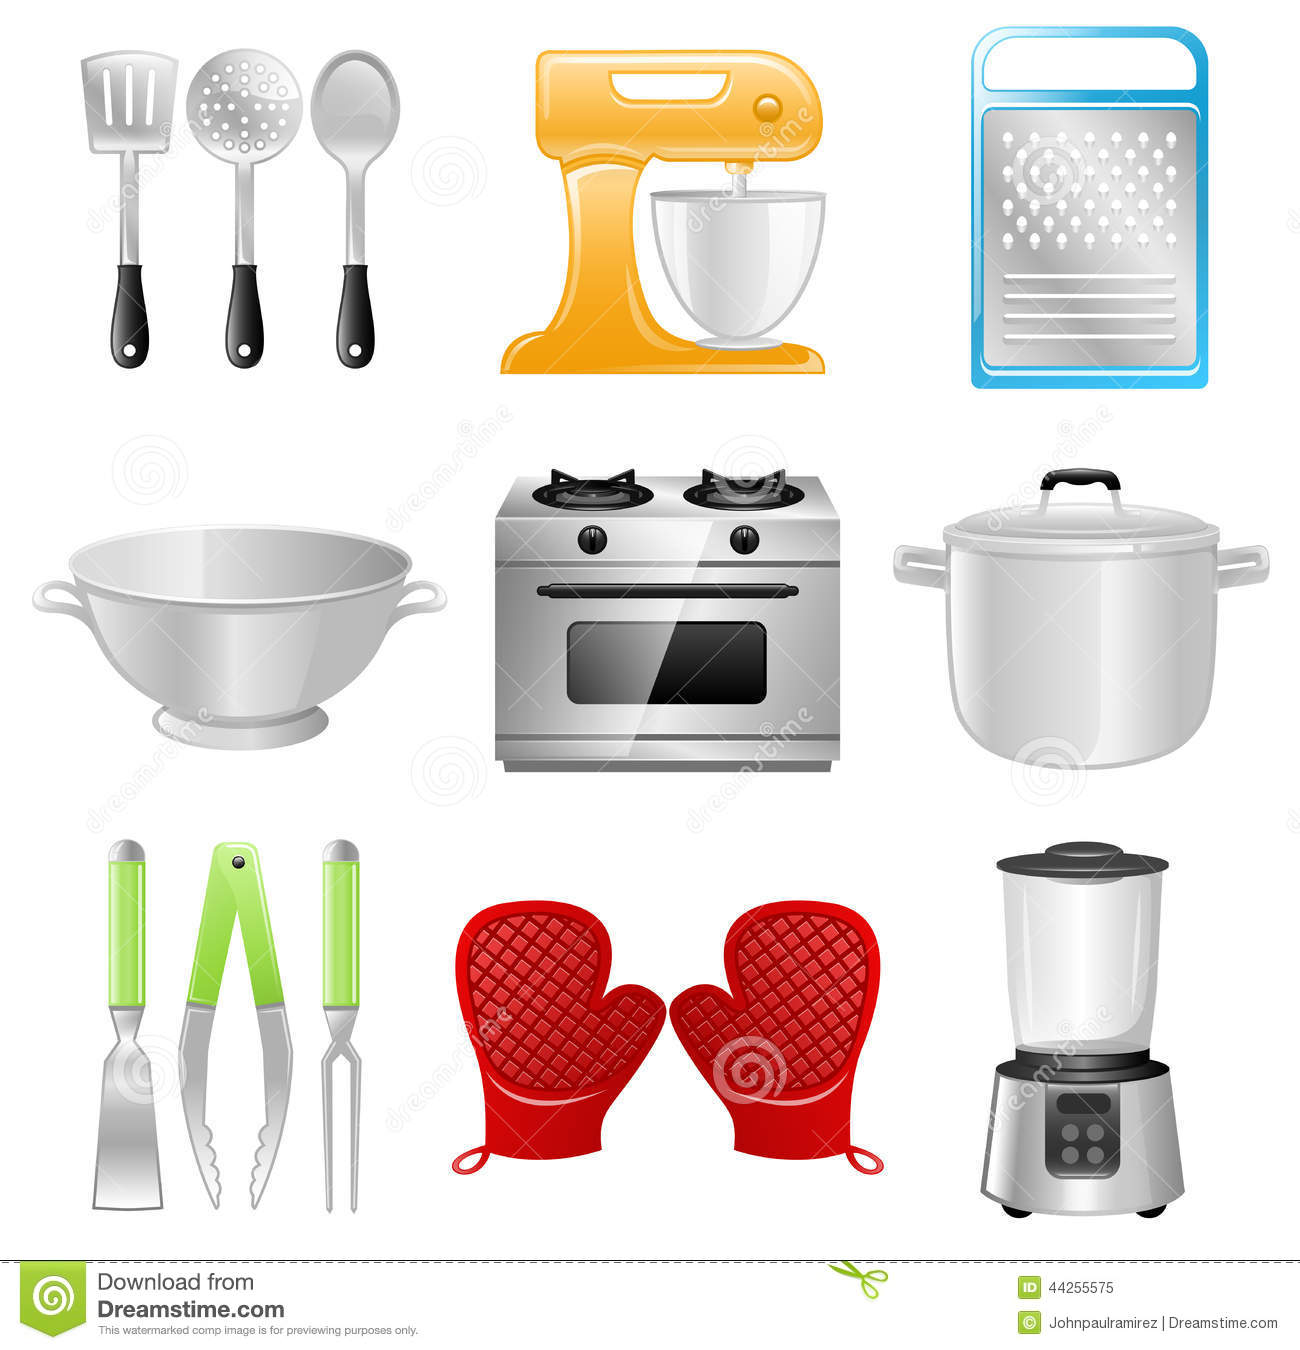 List Of Kitchen Utensils A To Z Kitchen Utensils Names In English Cooking Utensils Matching